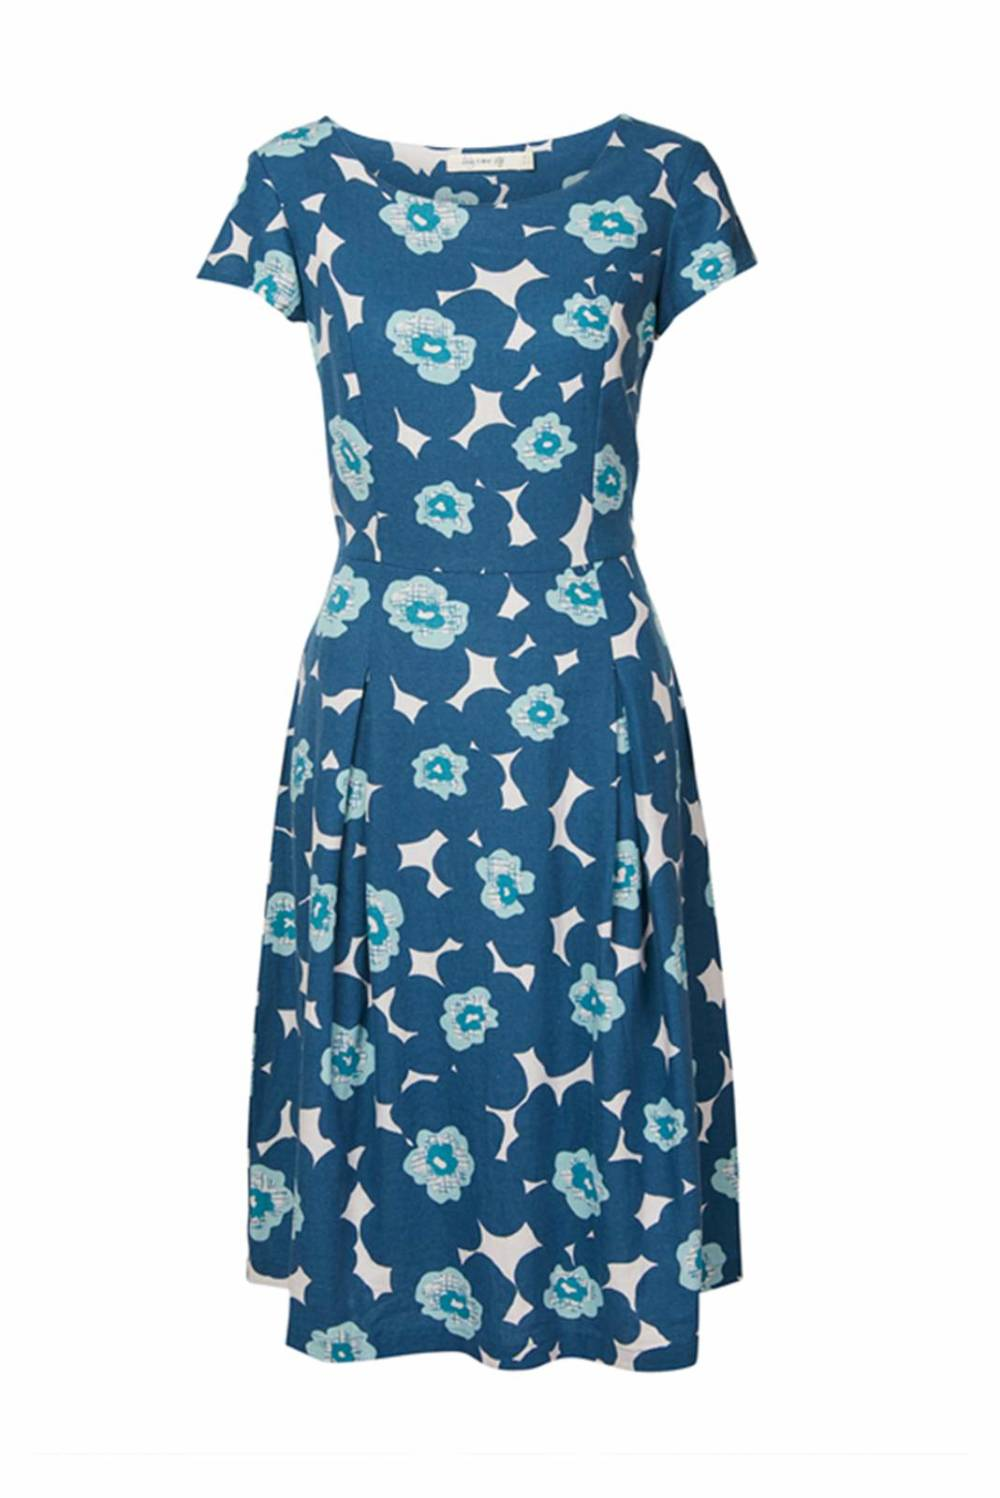 Falmouth Dress Modern Floral Lily and Me Katie Kerr Women's Clothing